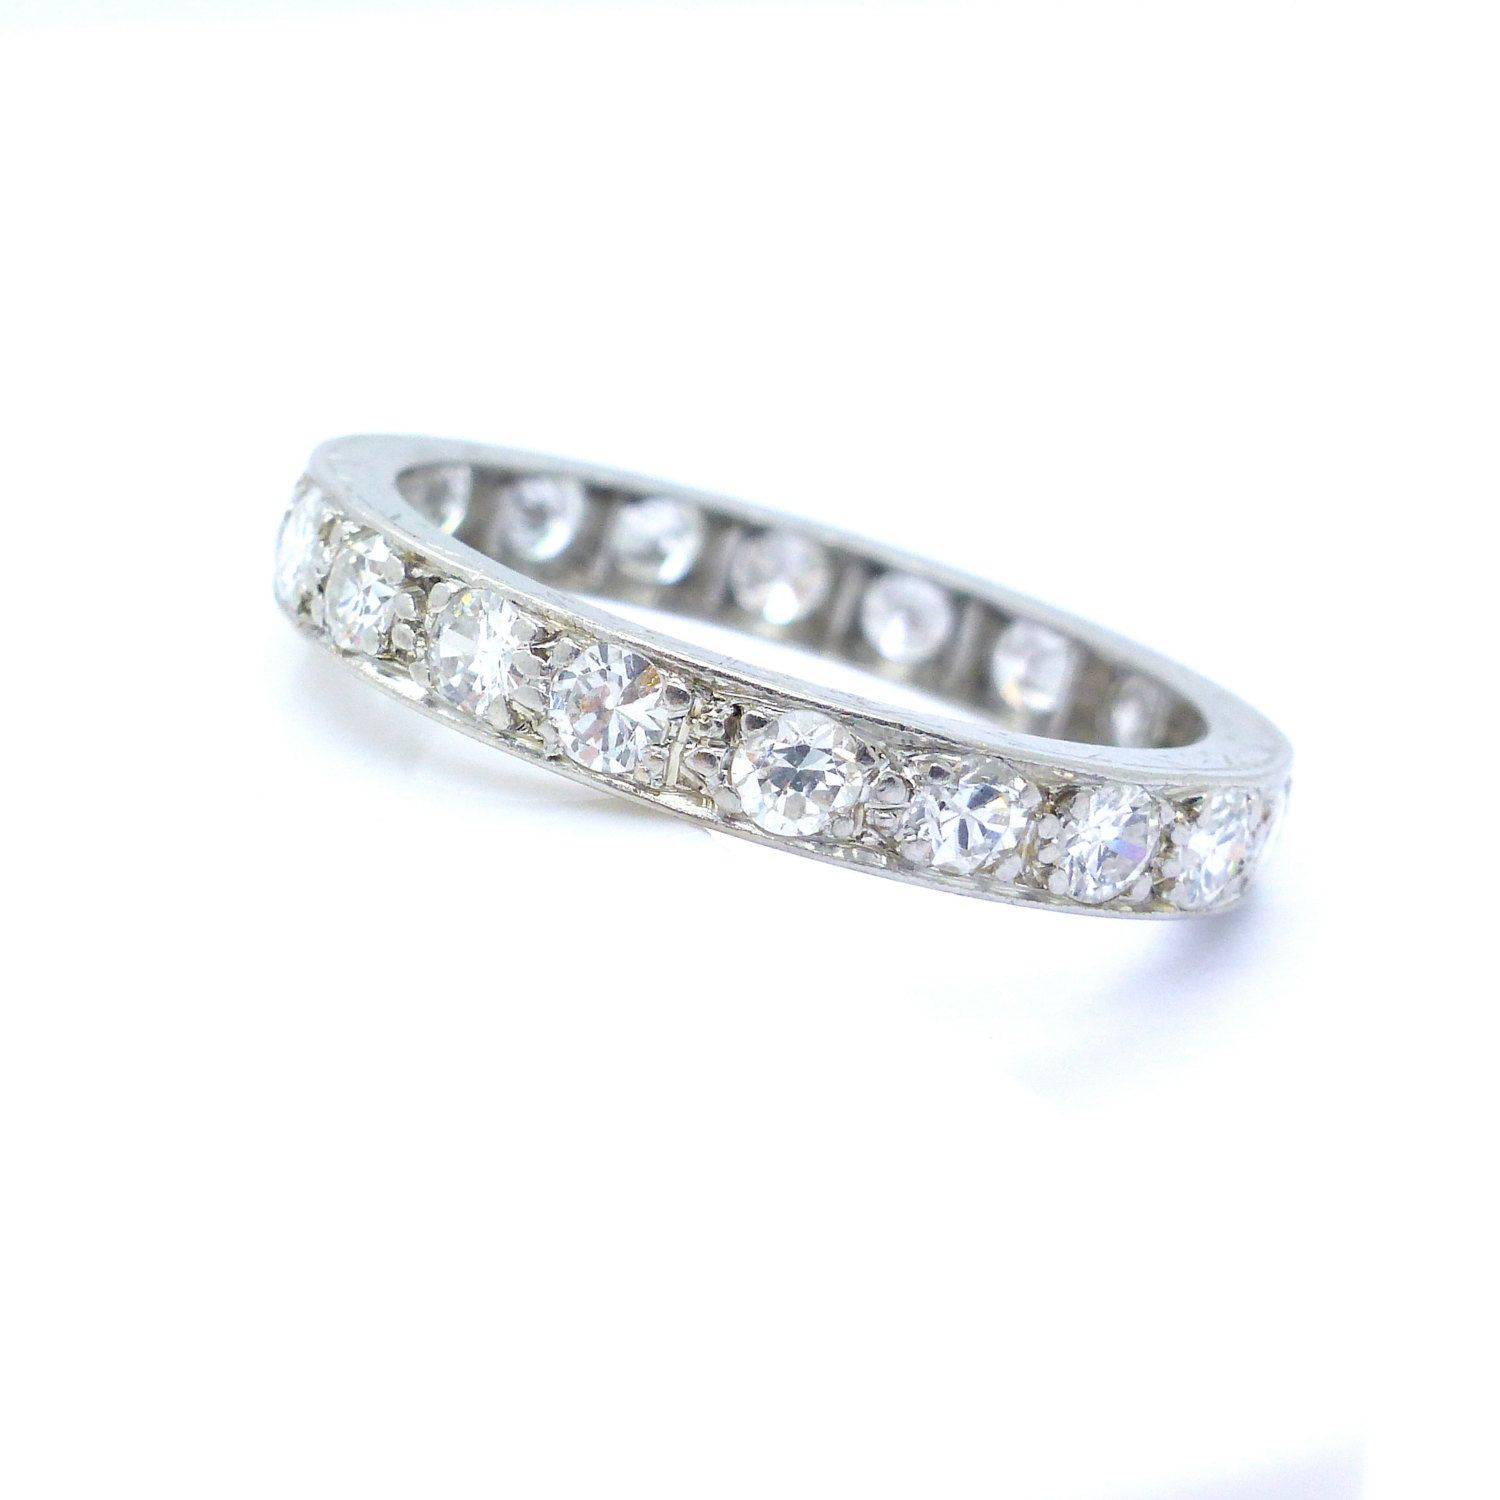 pin band ring bands wedding floating bubble matching full eternity prong diamond single